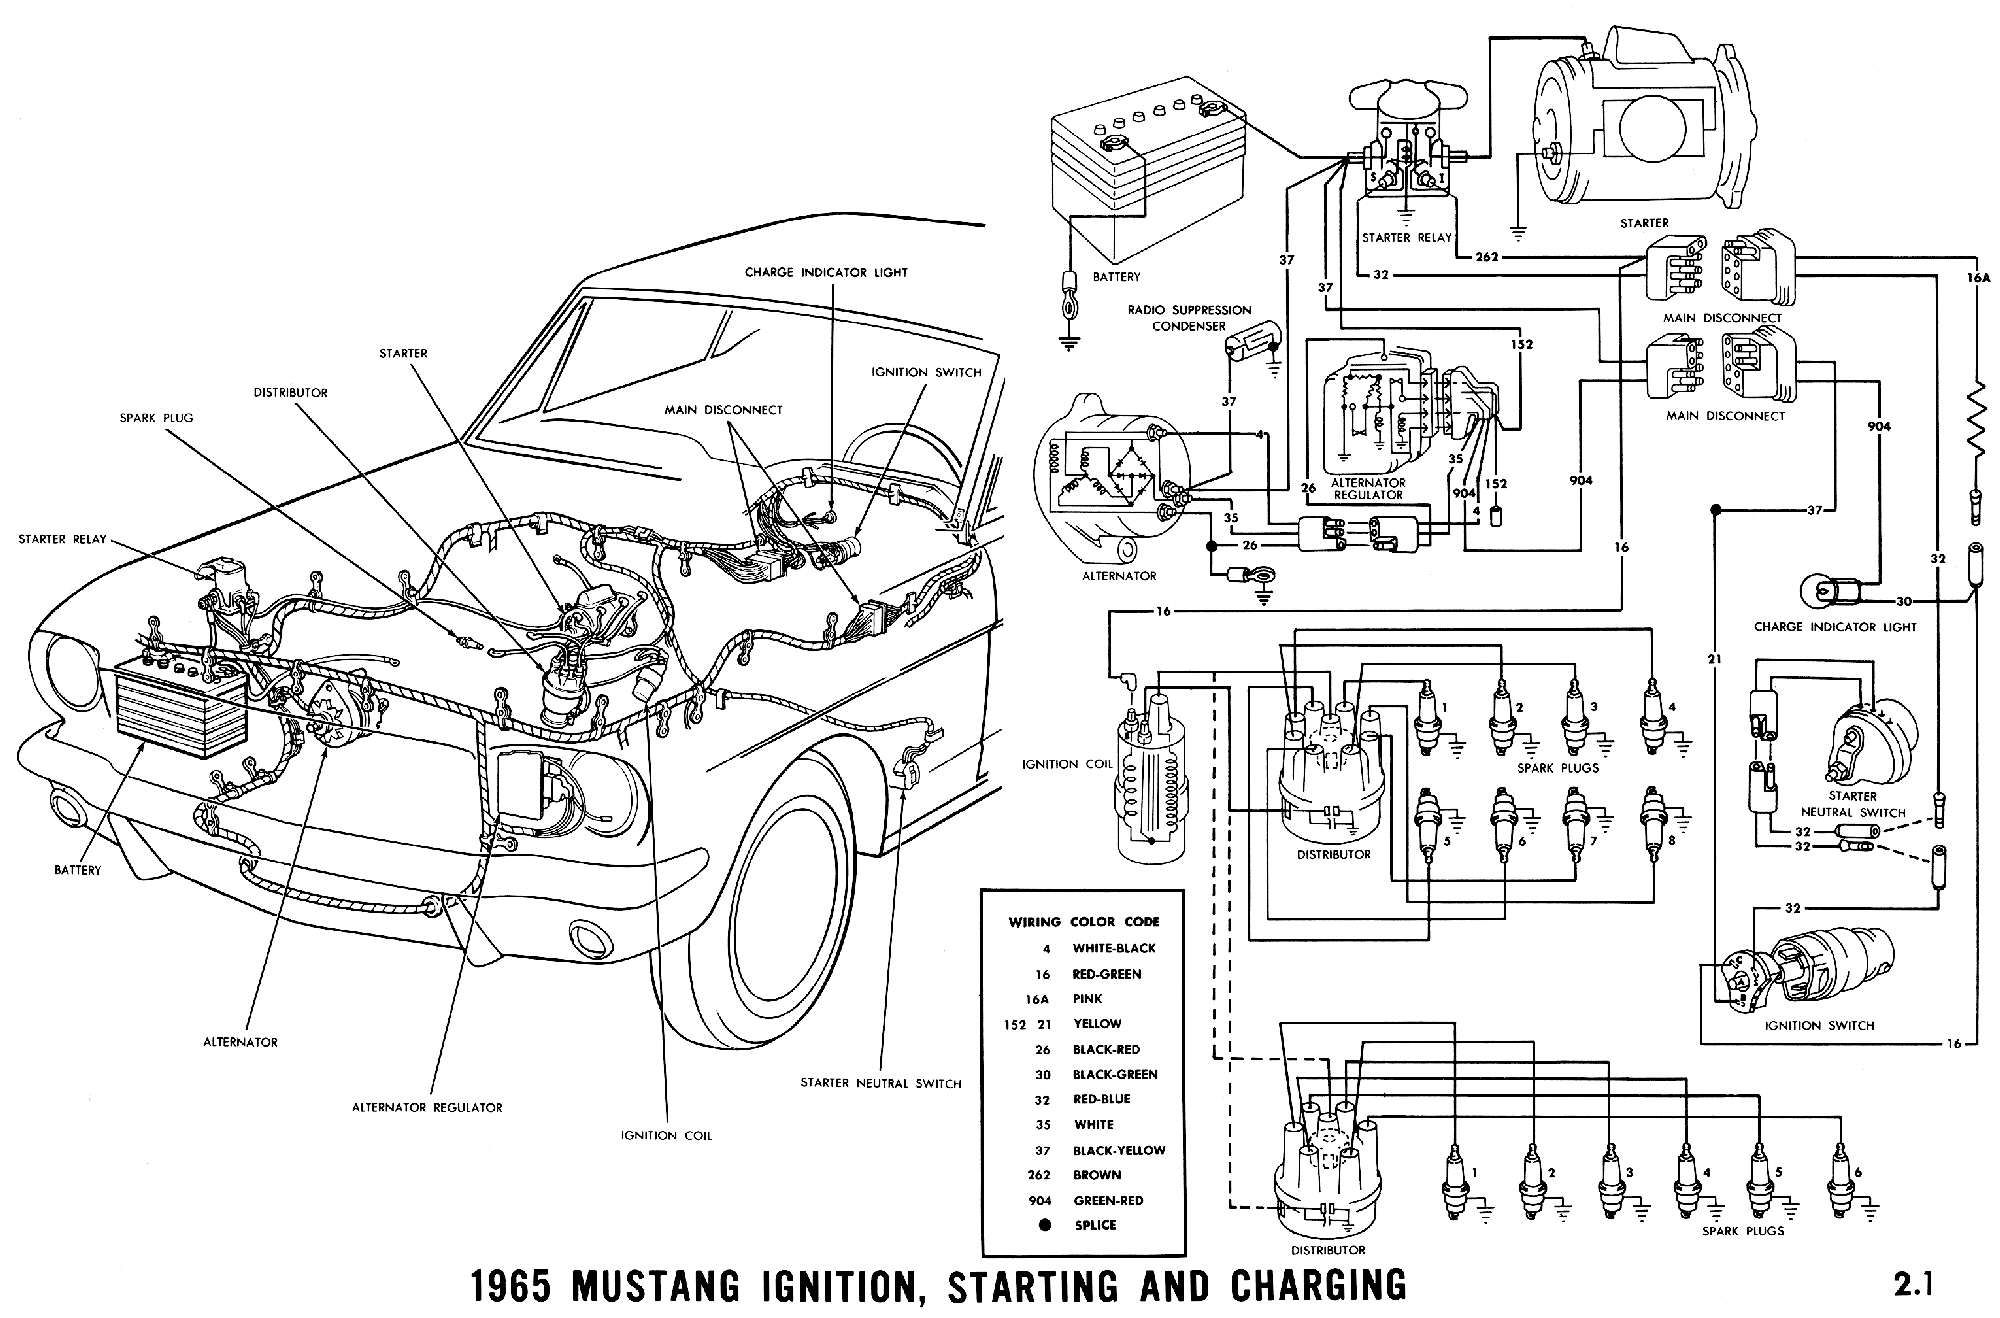 1965 Mustang Wiring Diagrams - Average Joe Restoration | Mustang engine,  1965 mustang, 1966 ford mustang | Ford Mustang Wiper Switch Wiring Diagram 1967 |  | Pinterest